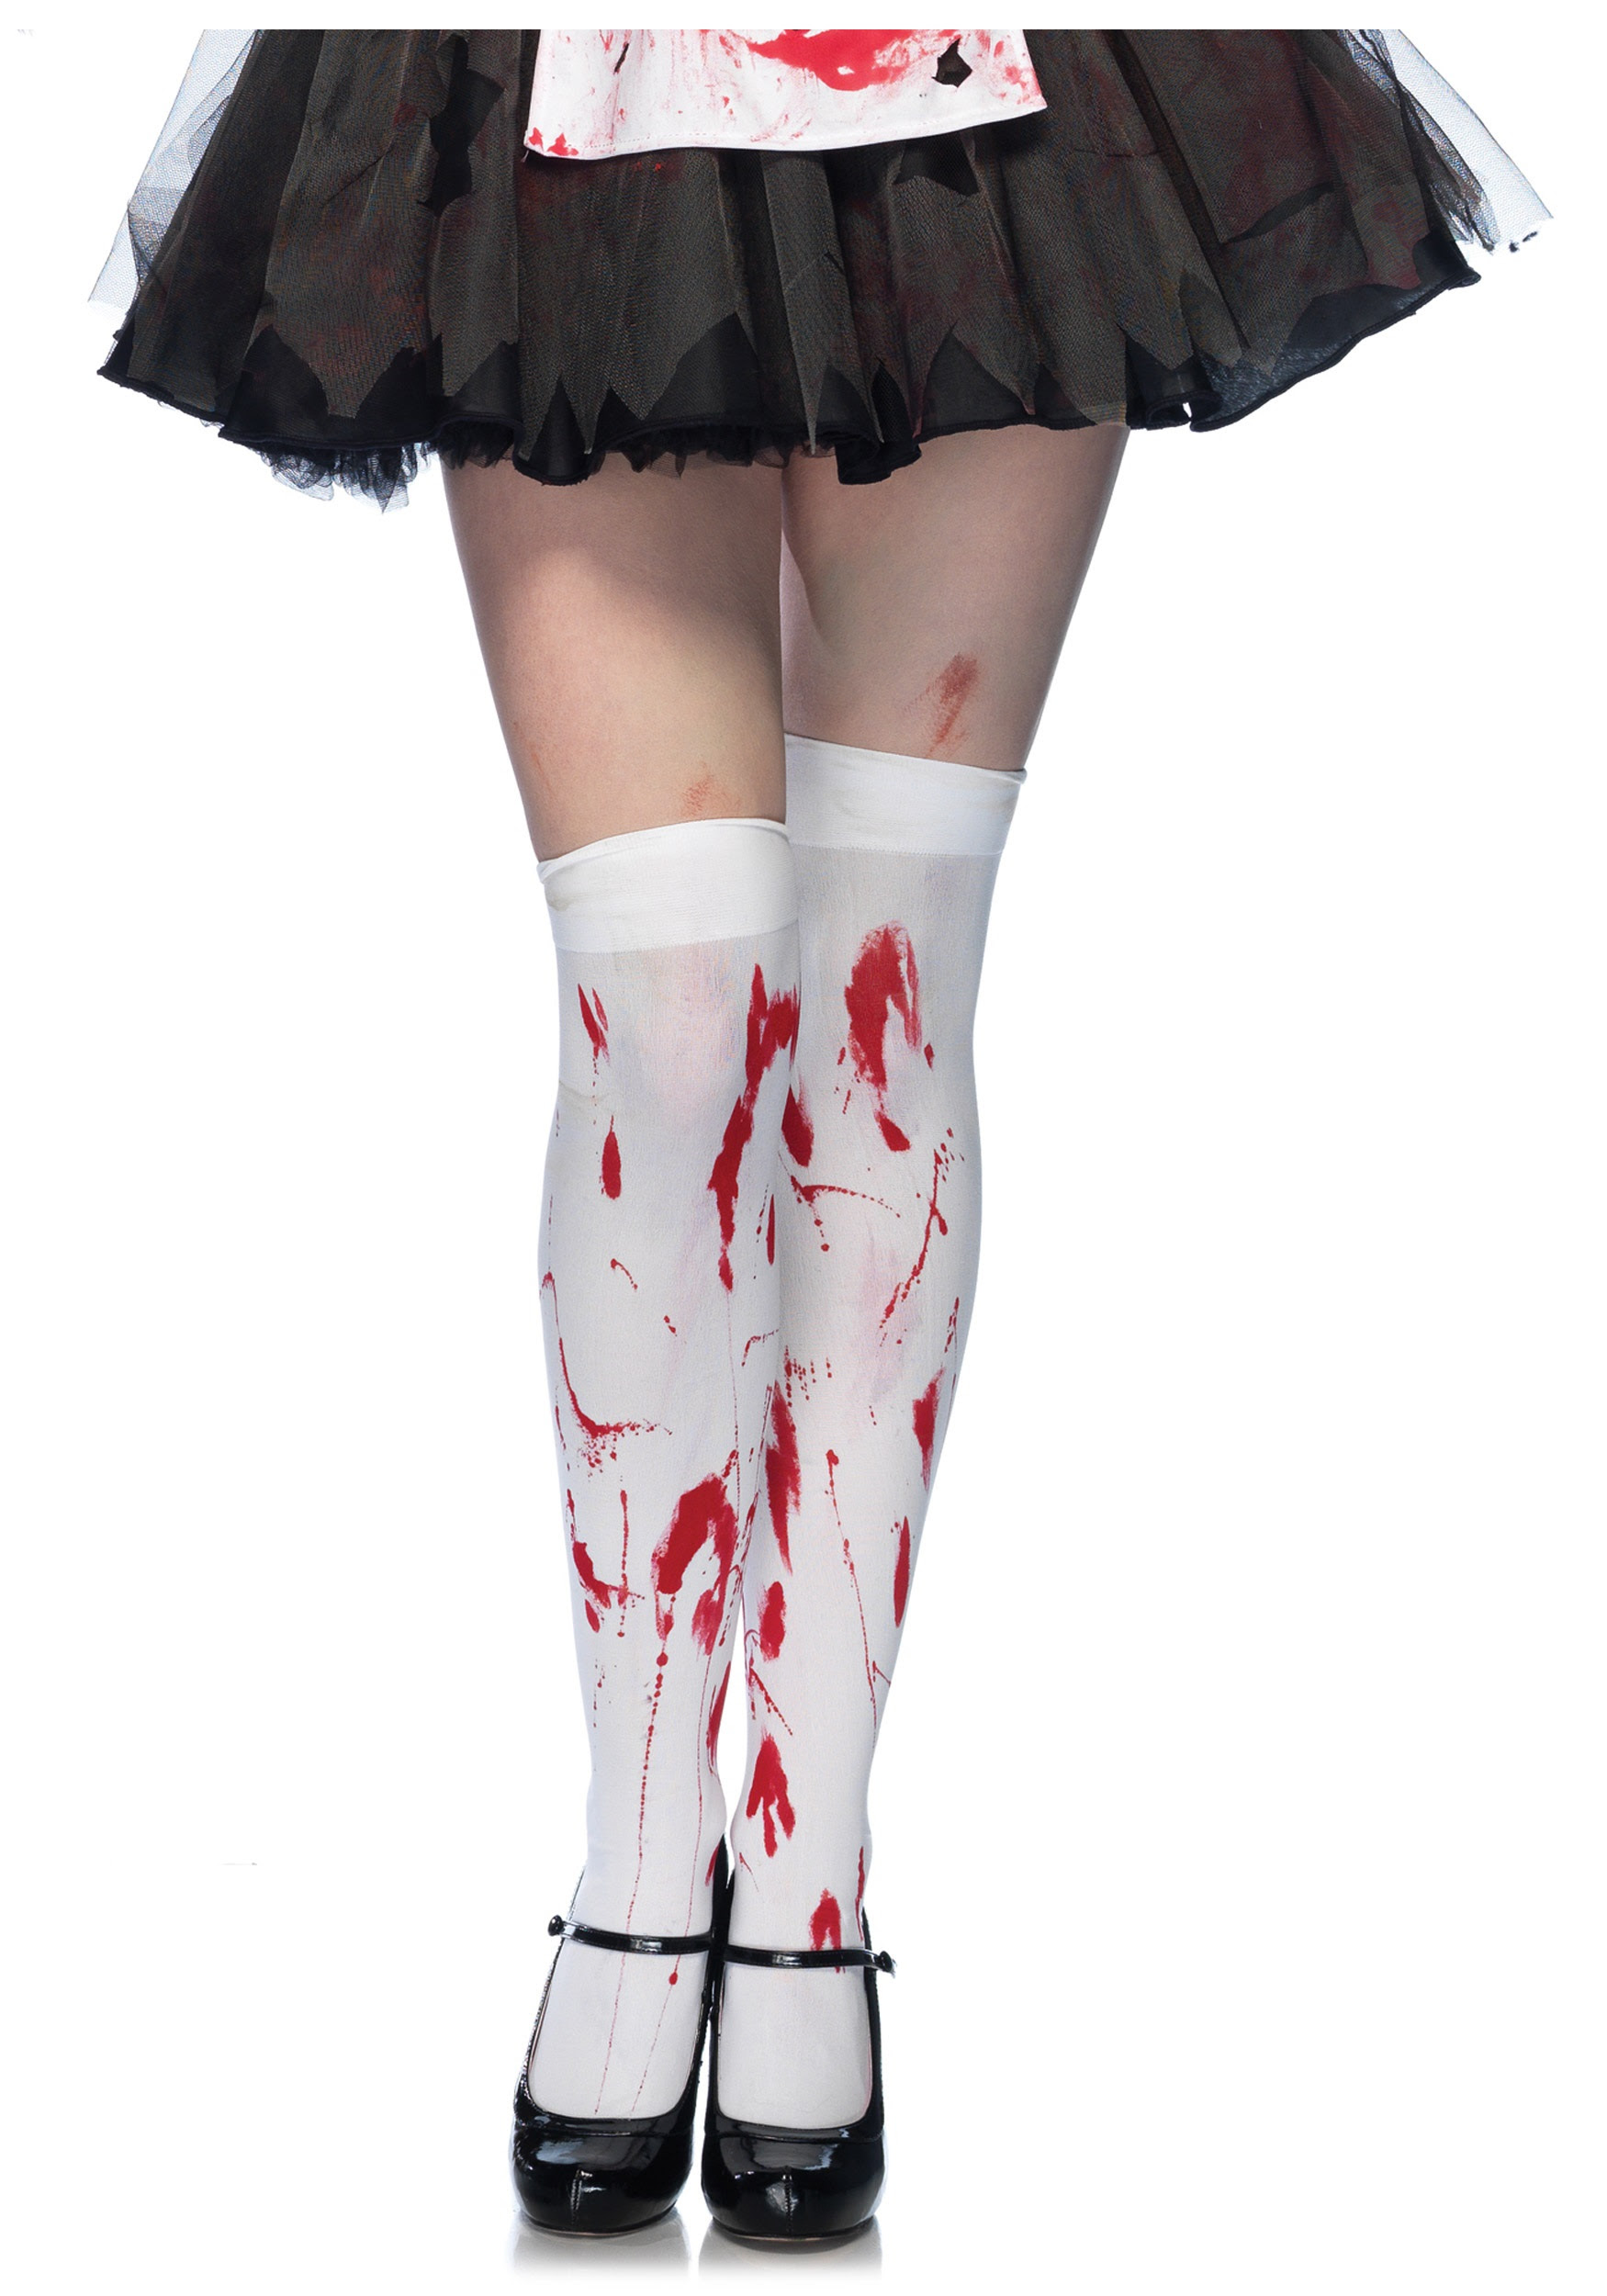 halloween costume ideas for women on Home Top Costume Idea Searches Scary Halloween Costume Ideas Bloodied